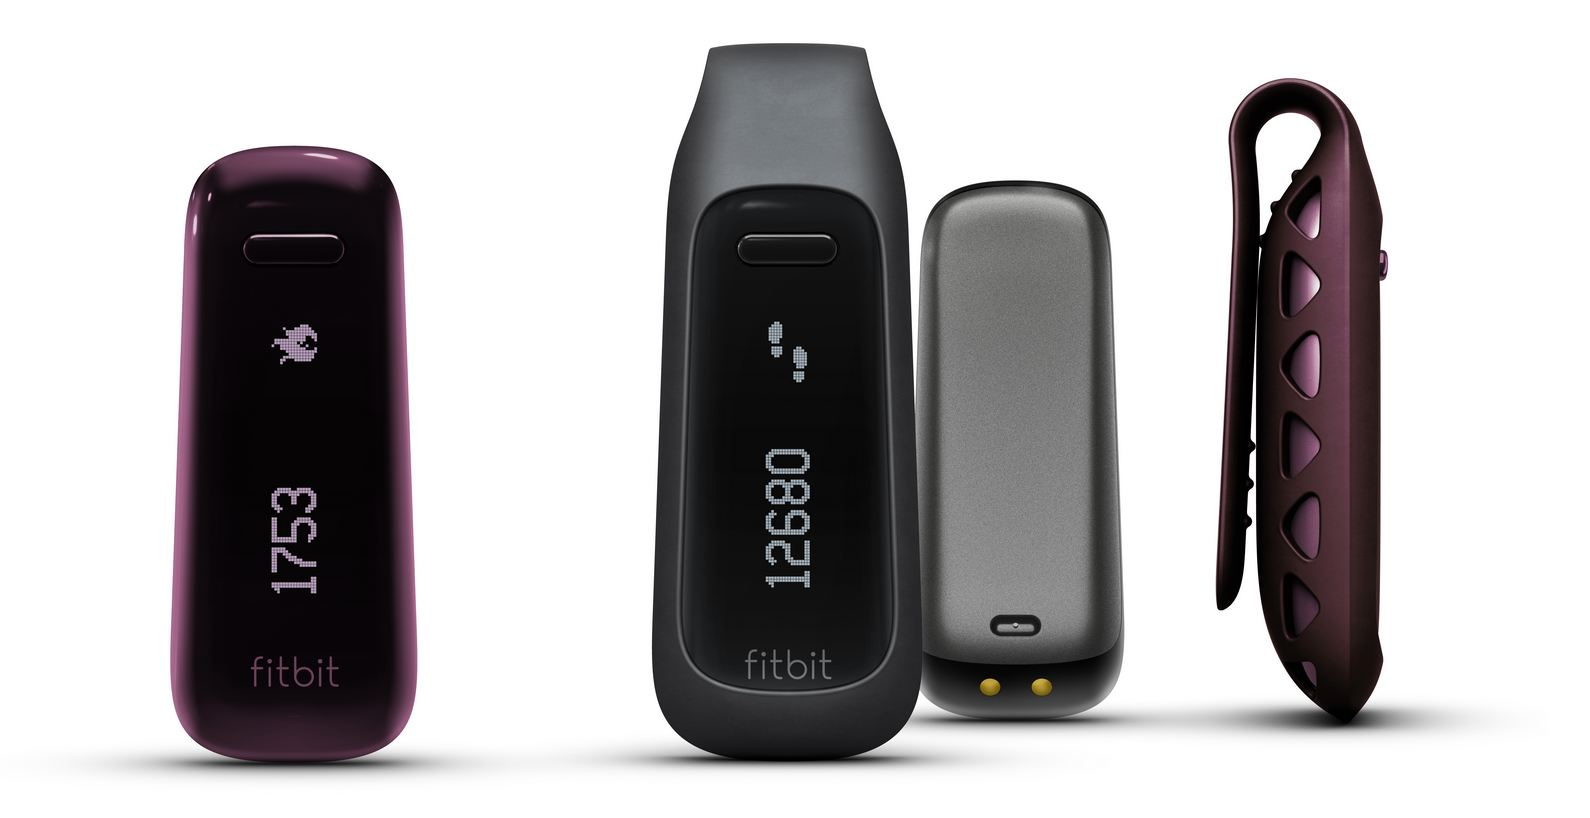 Android fitbit fitness iOS iphone iPod Touch one schrittzähler tracker zip